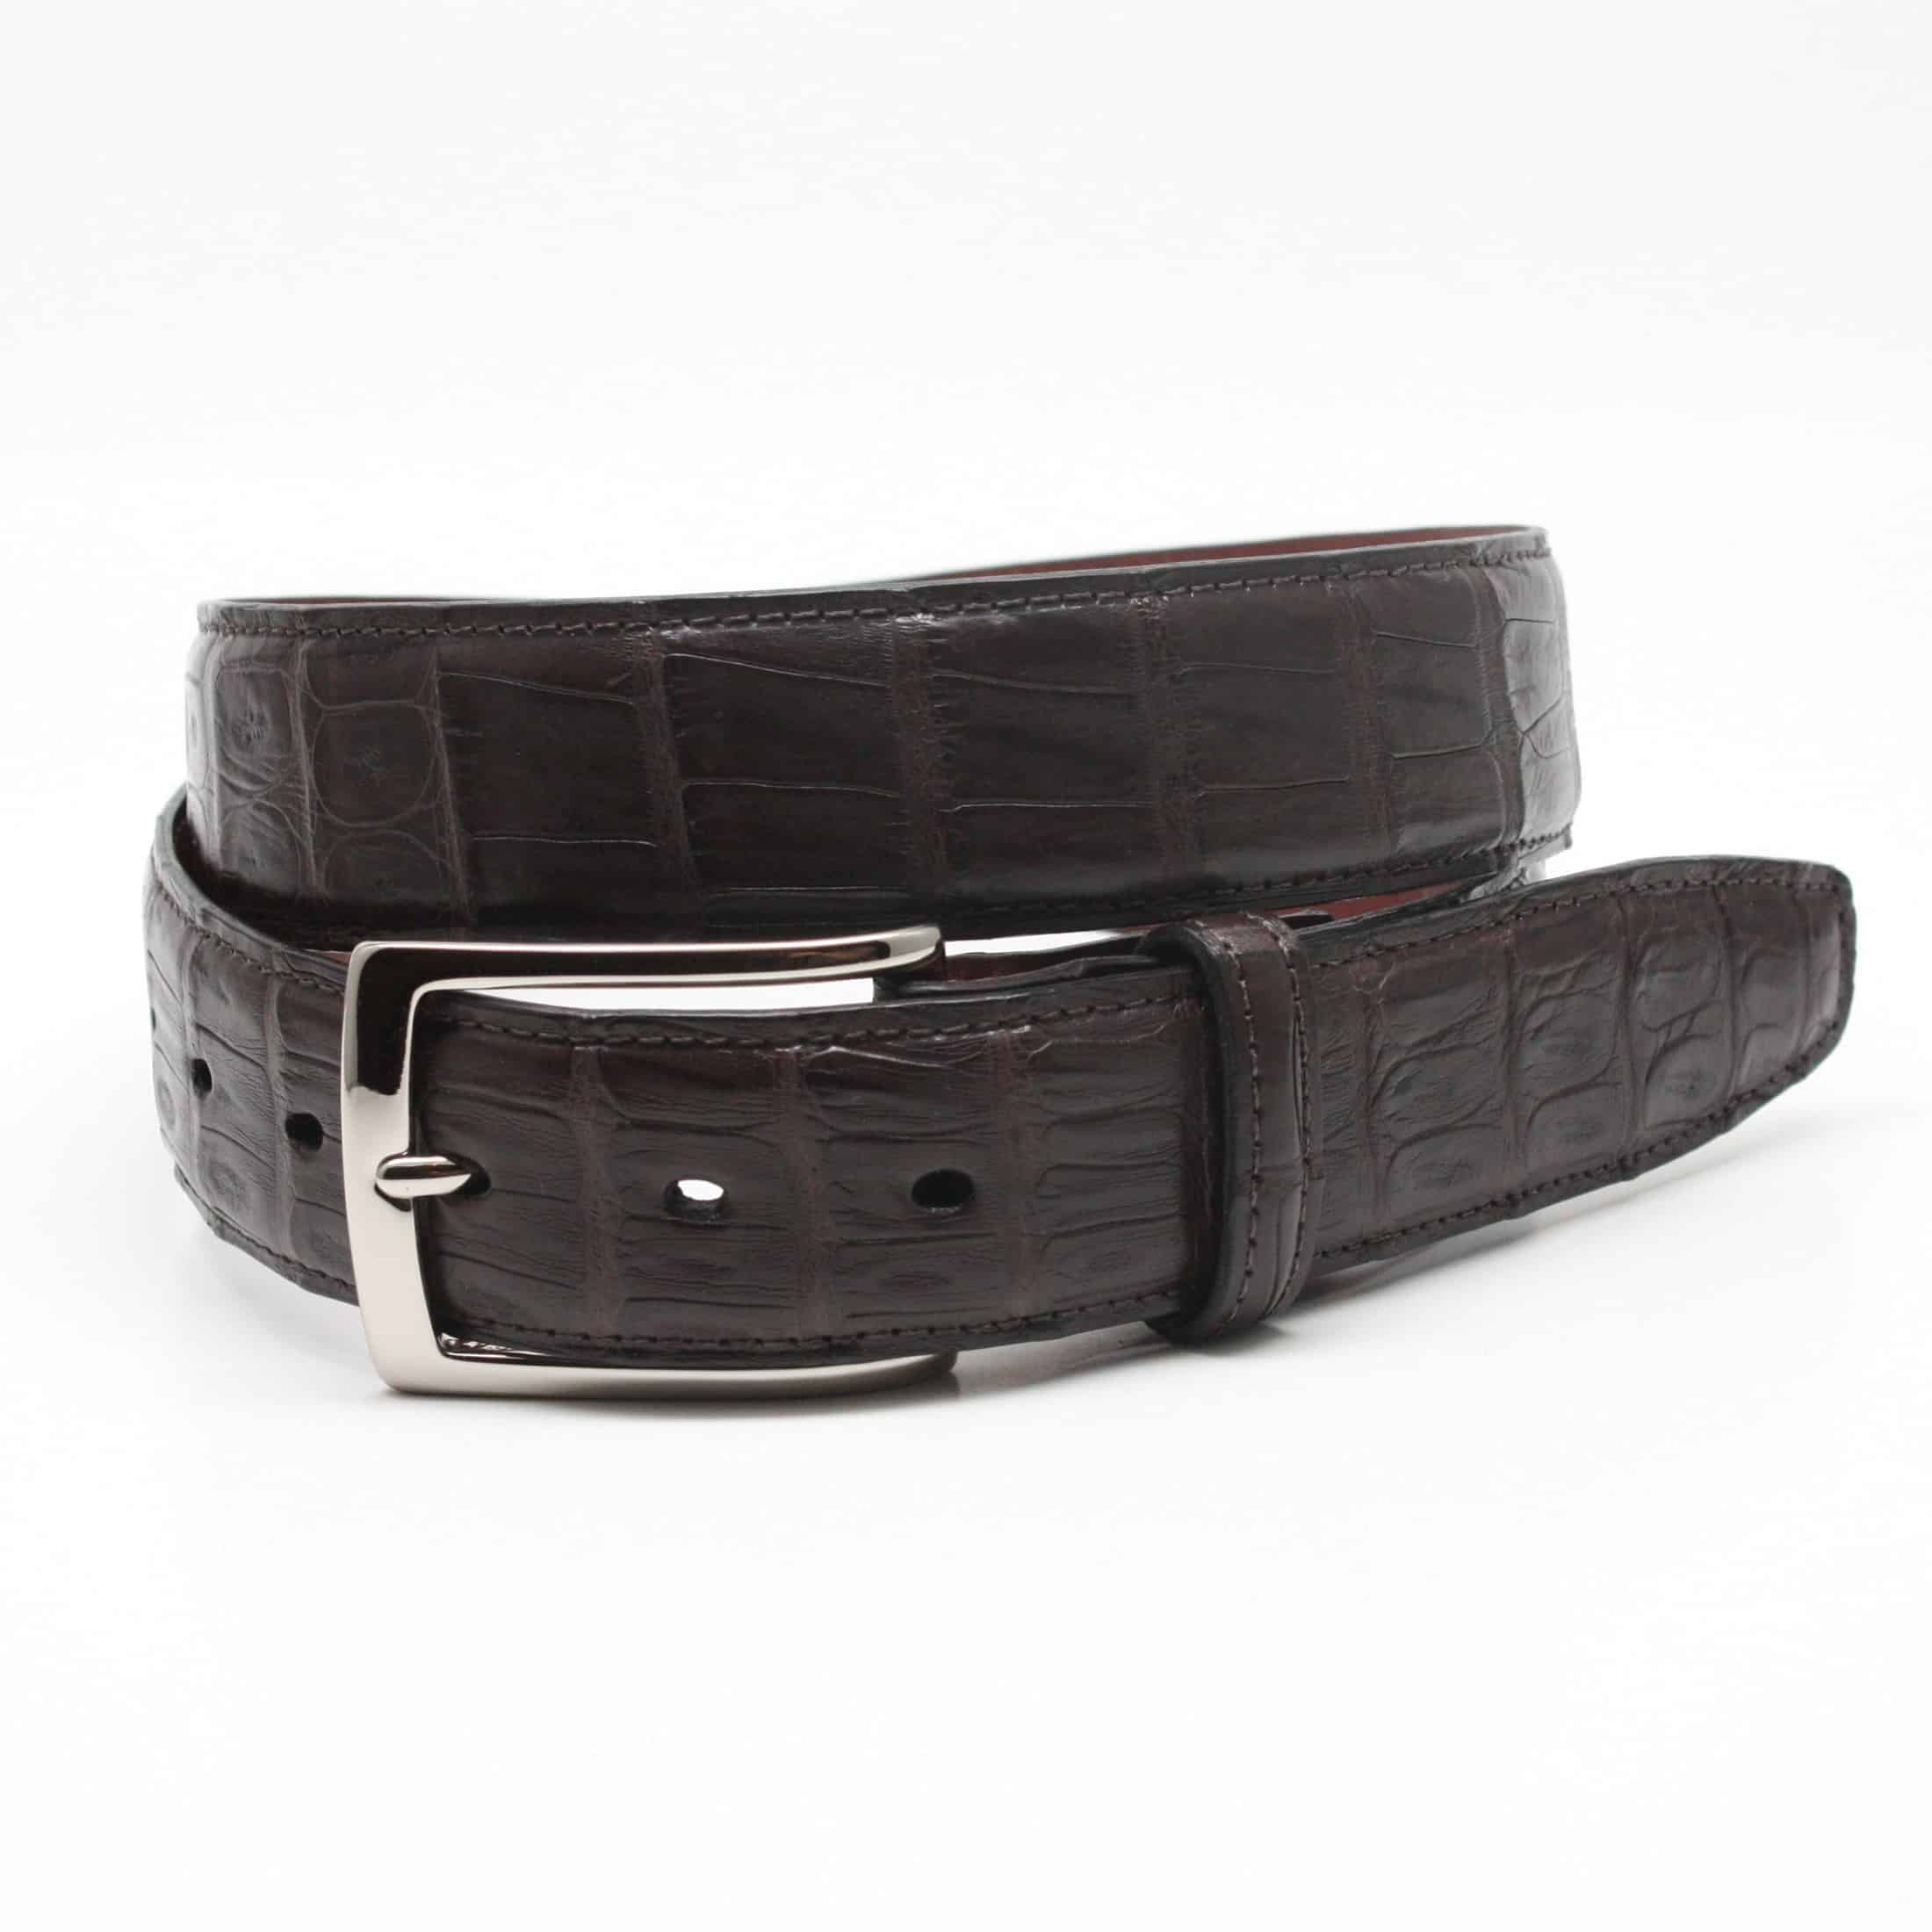 South American Caiman Belt - Brown,BELT,Gent Row, | GentRow.com